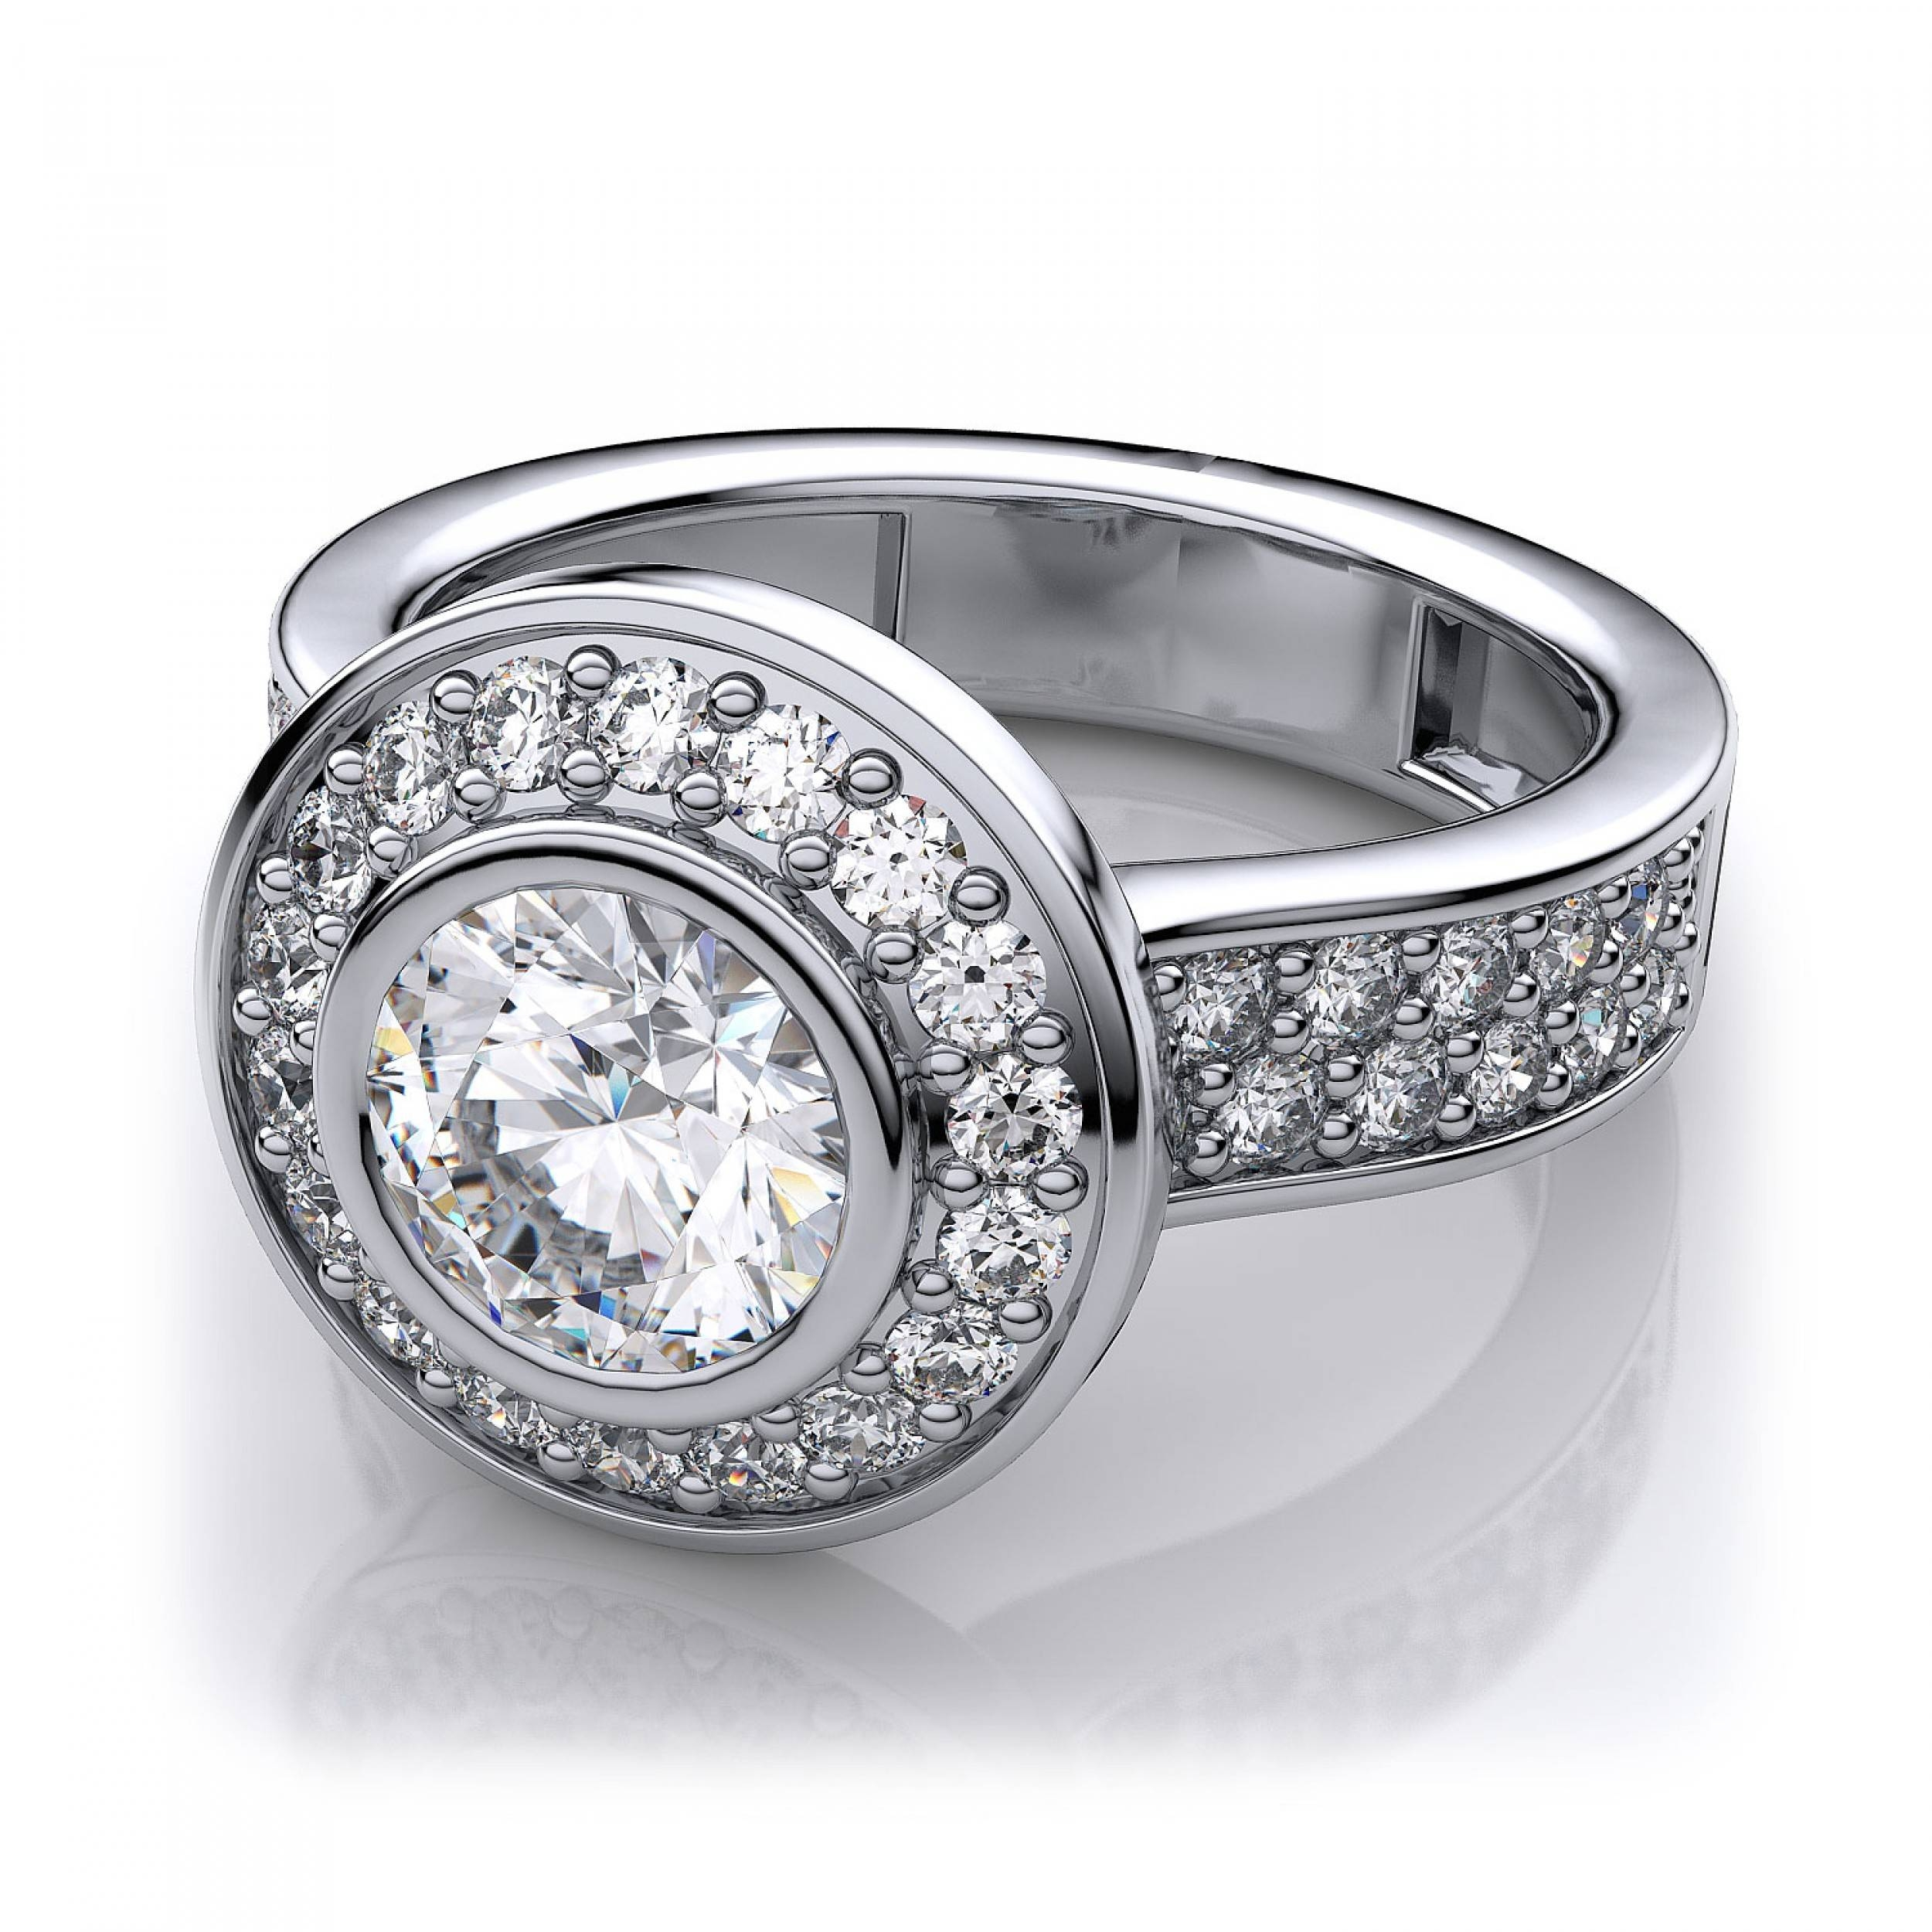 84Ctw Modern Round Halo Bezel Set Diamond Sidestones Ring Mount In Within Pear Bezel Engagement Rings (View 4 of 15)